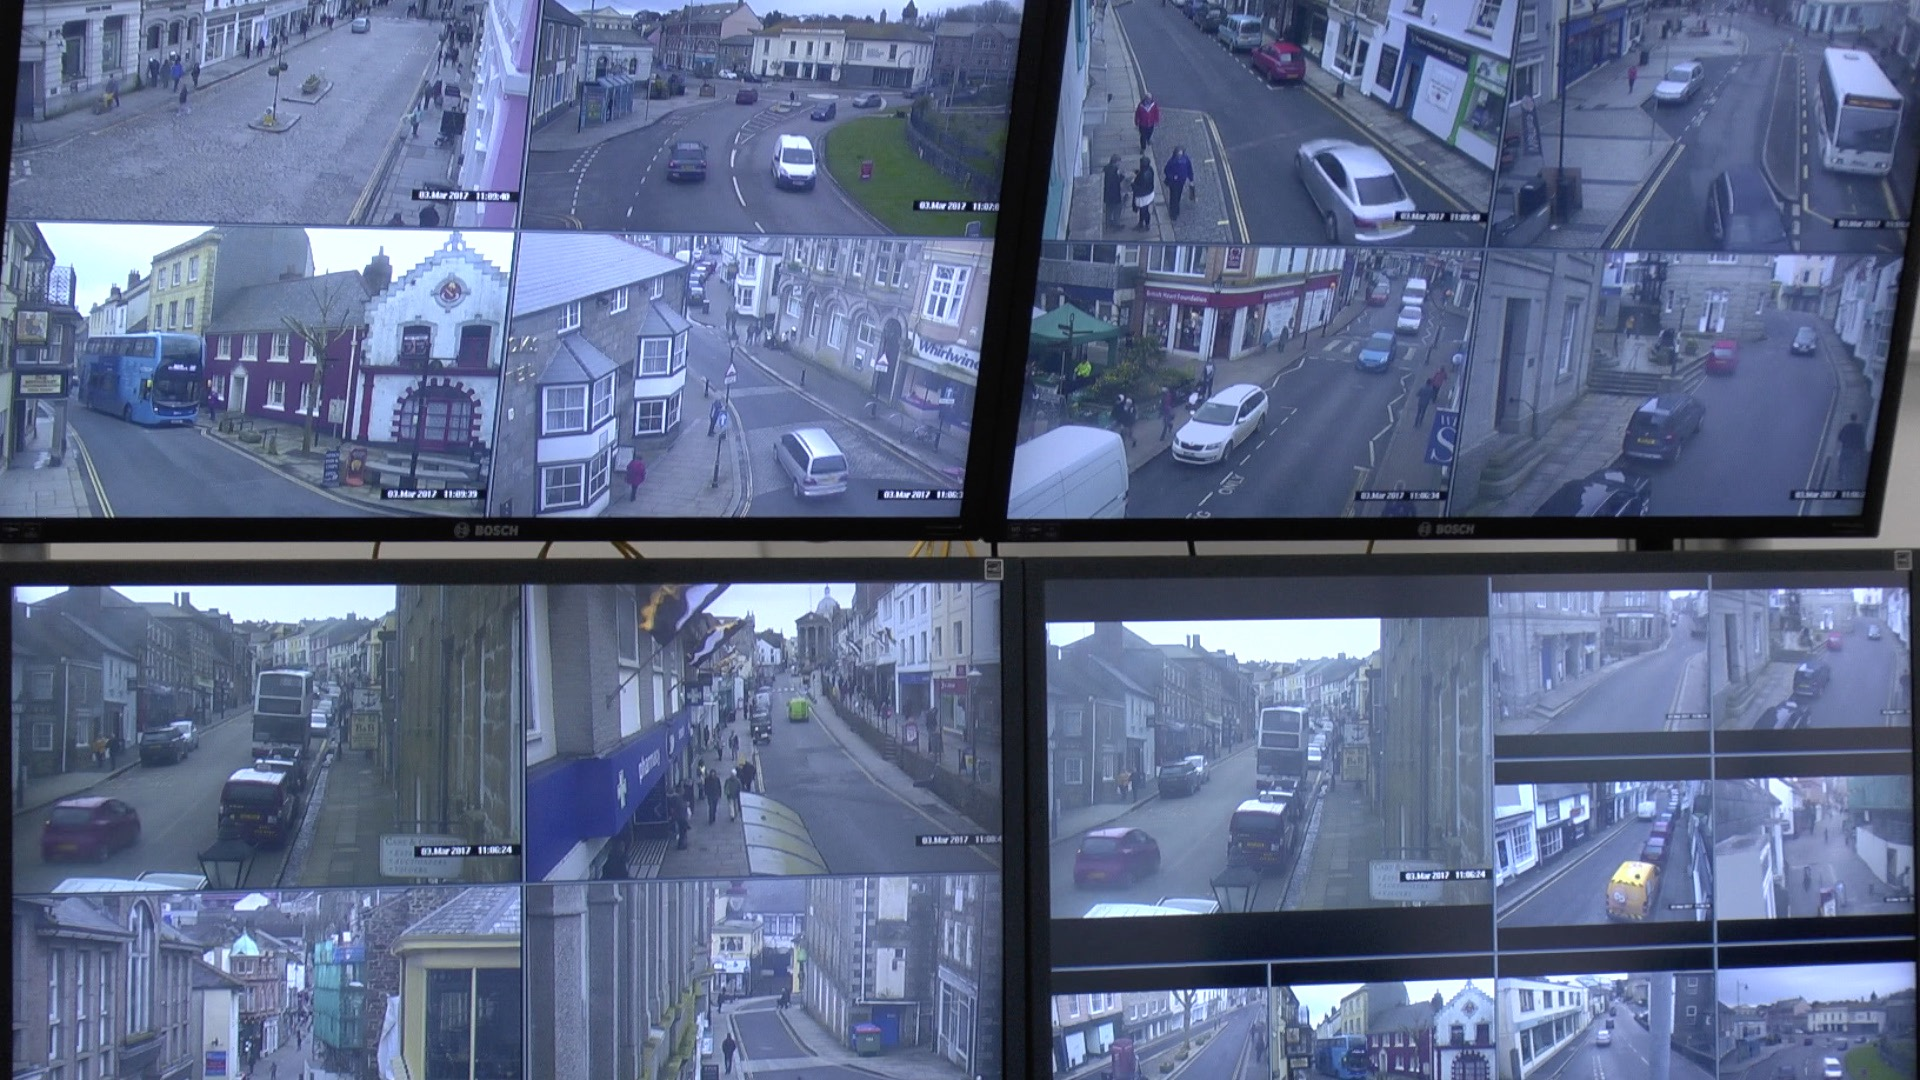 New CCTV system up and running in Exmouth